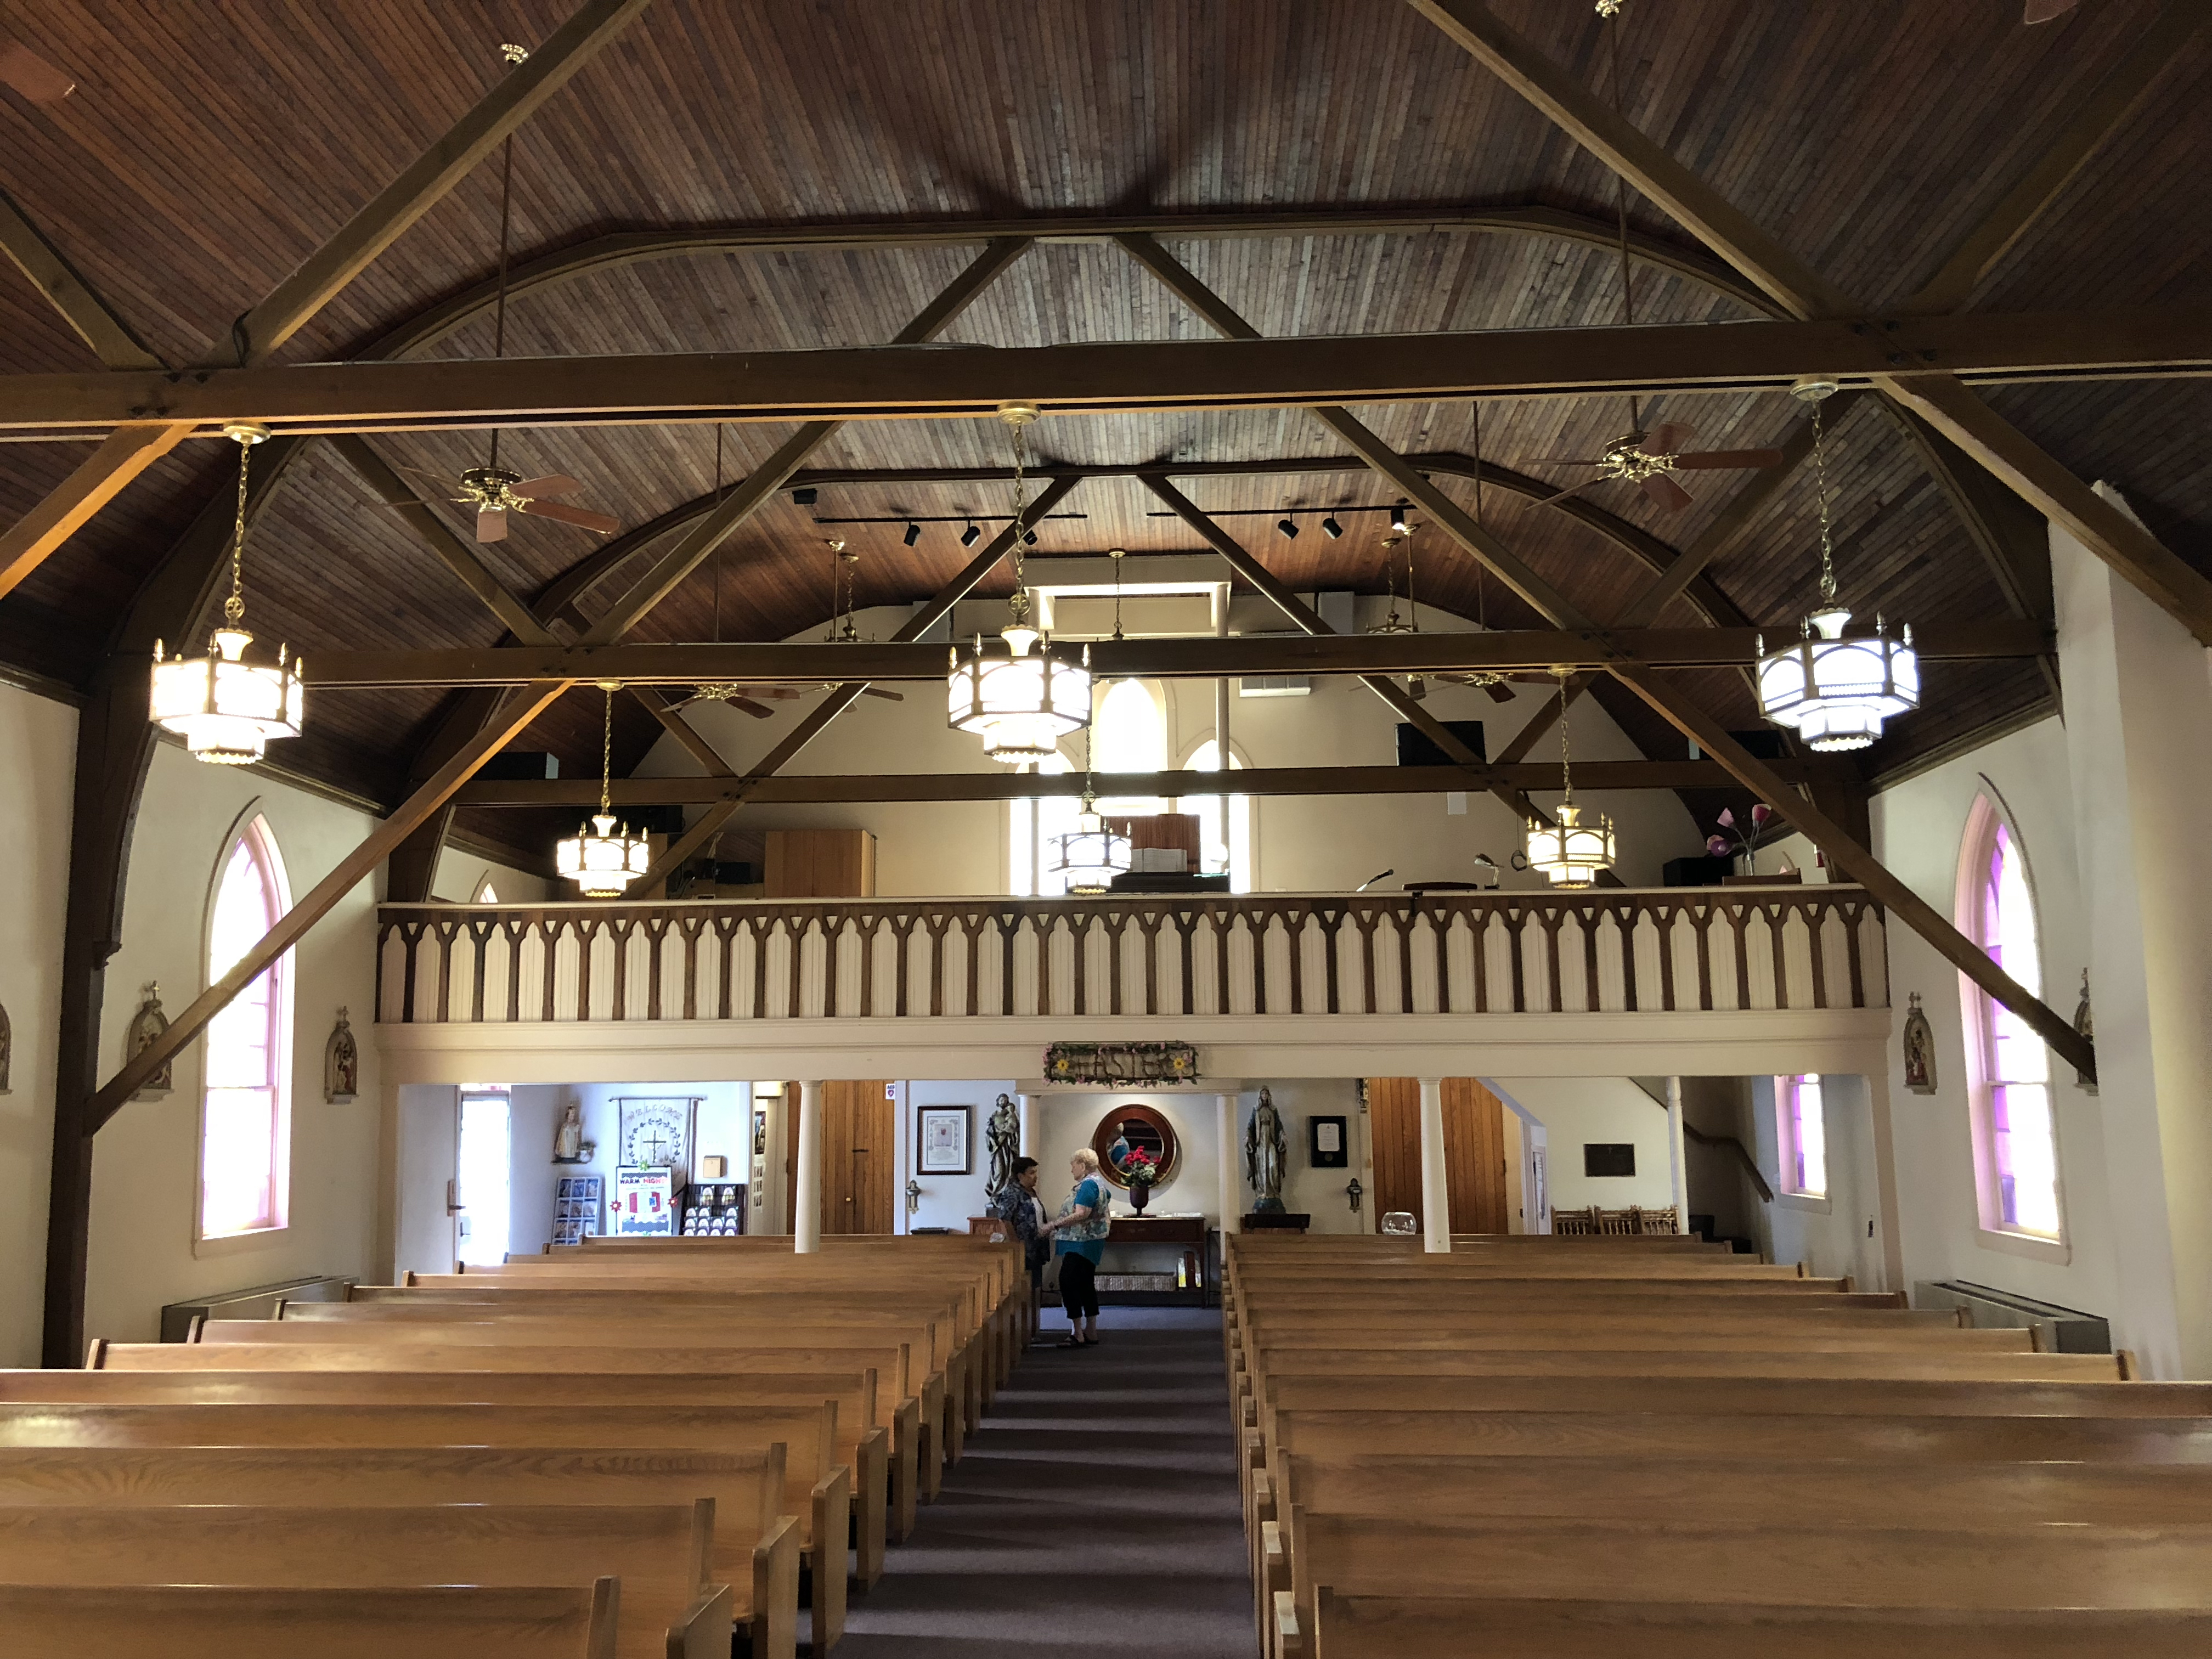 catholic single men in wabaunsee county The dougan family: a brief history i am continually delighted to discover new information about the families that have played a role in the history of wabaunsee county and maple hill, kansas.